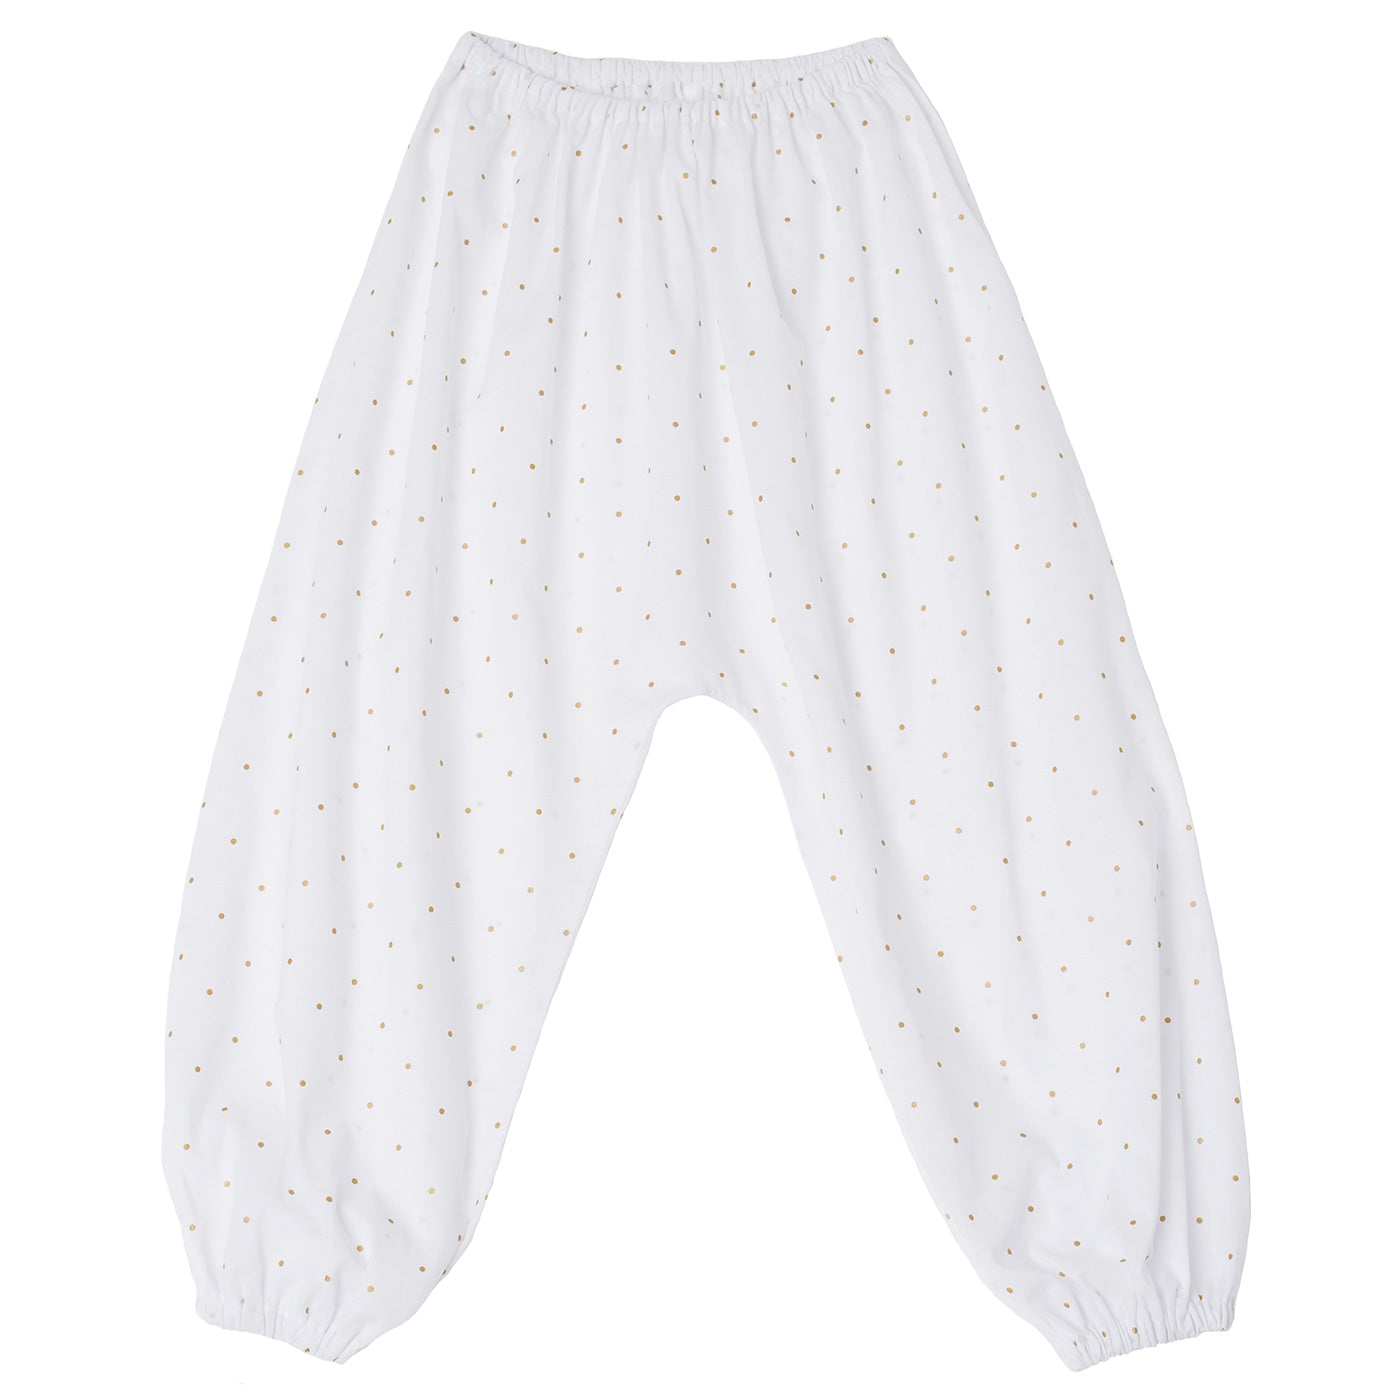 Pants Harem White polka-dots